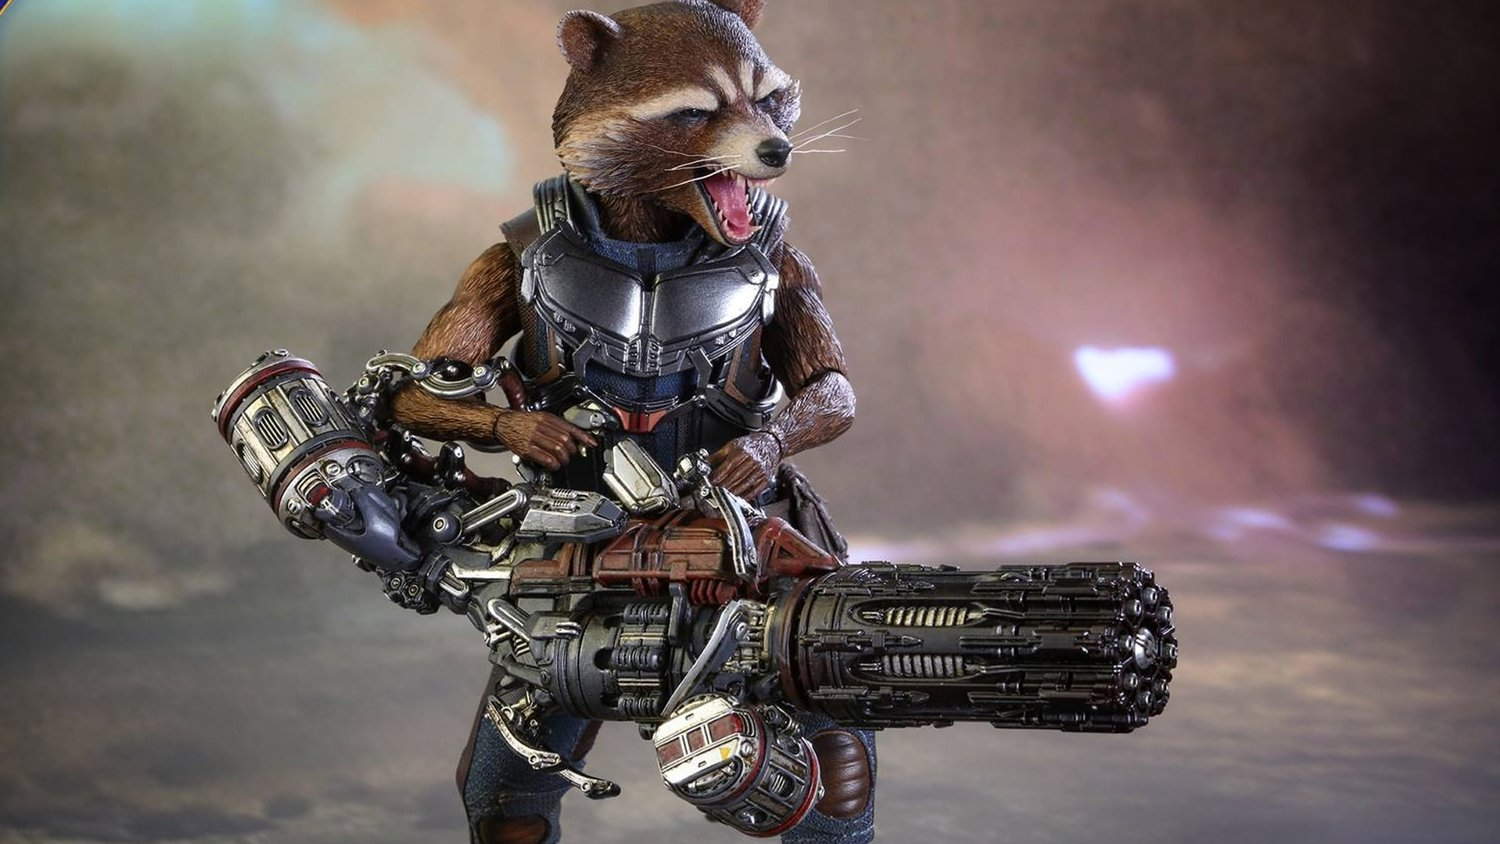 Hot Toys Reveals Their GUARDIANS OF THE GALAXY VOL. 2 Rocket Raccoon Action Figure